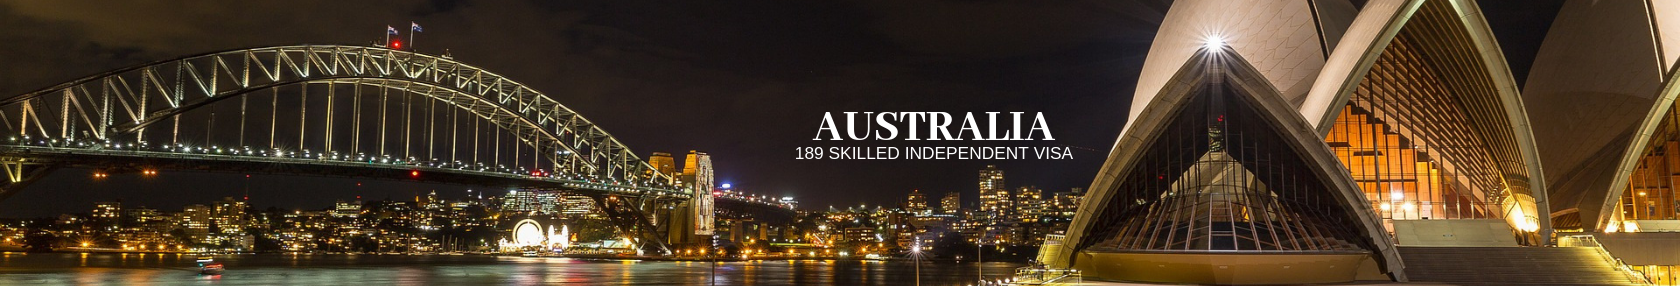 Australia, 189 Skilled Independent Visa